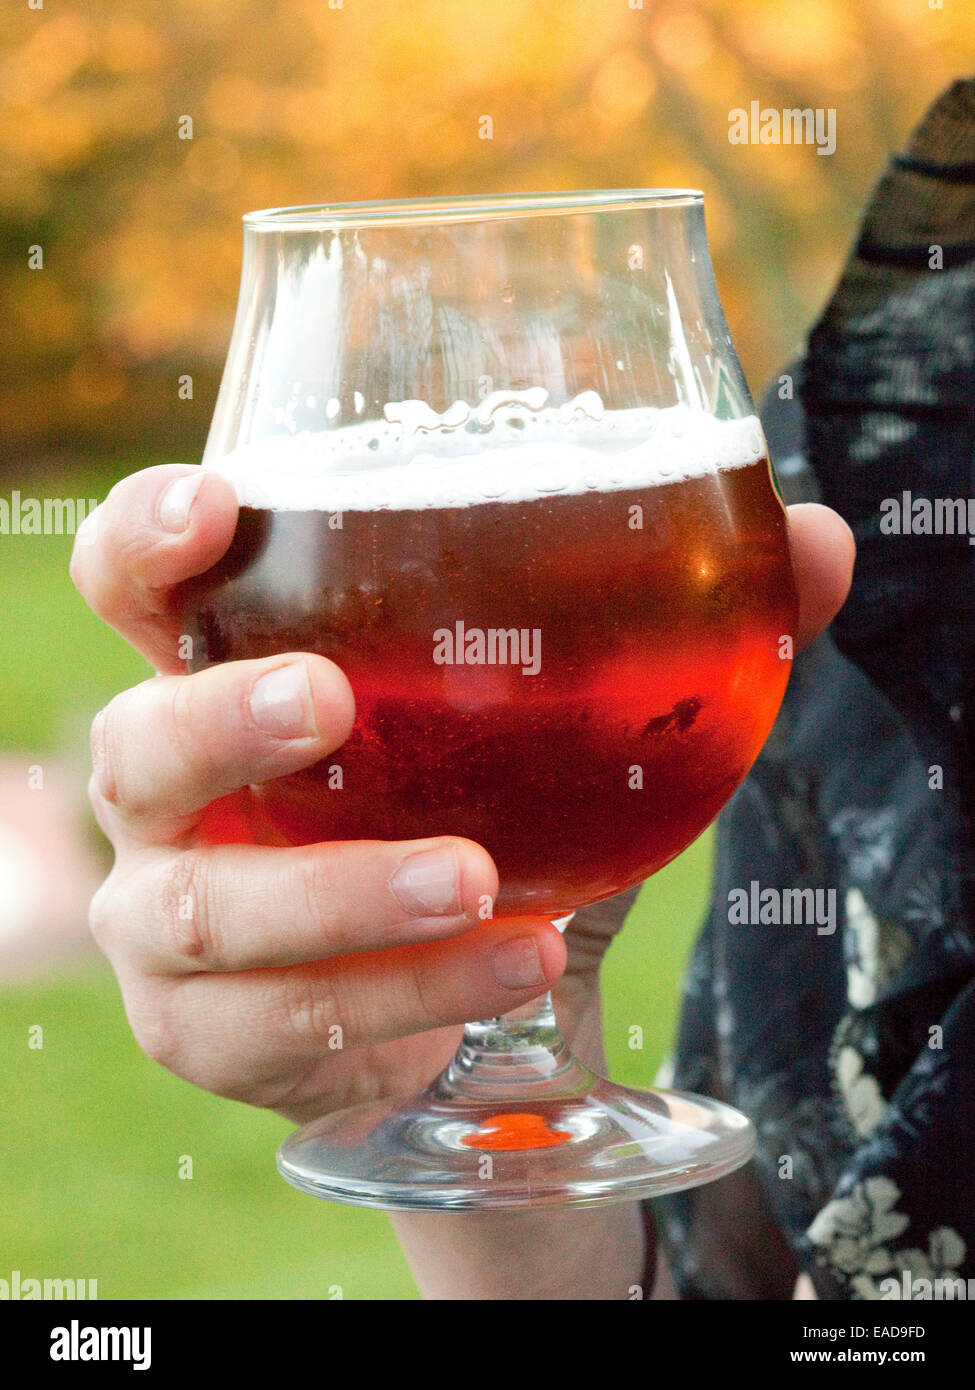 holding a glass of beer during out door cocktail reception - Stock Image